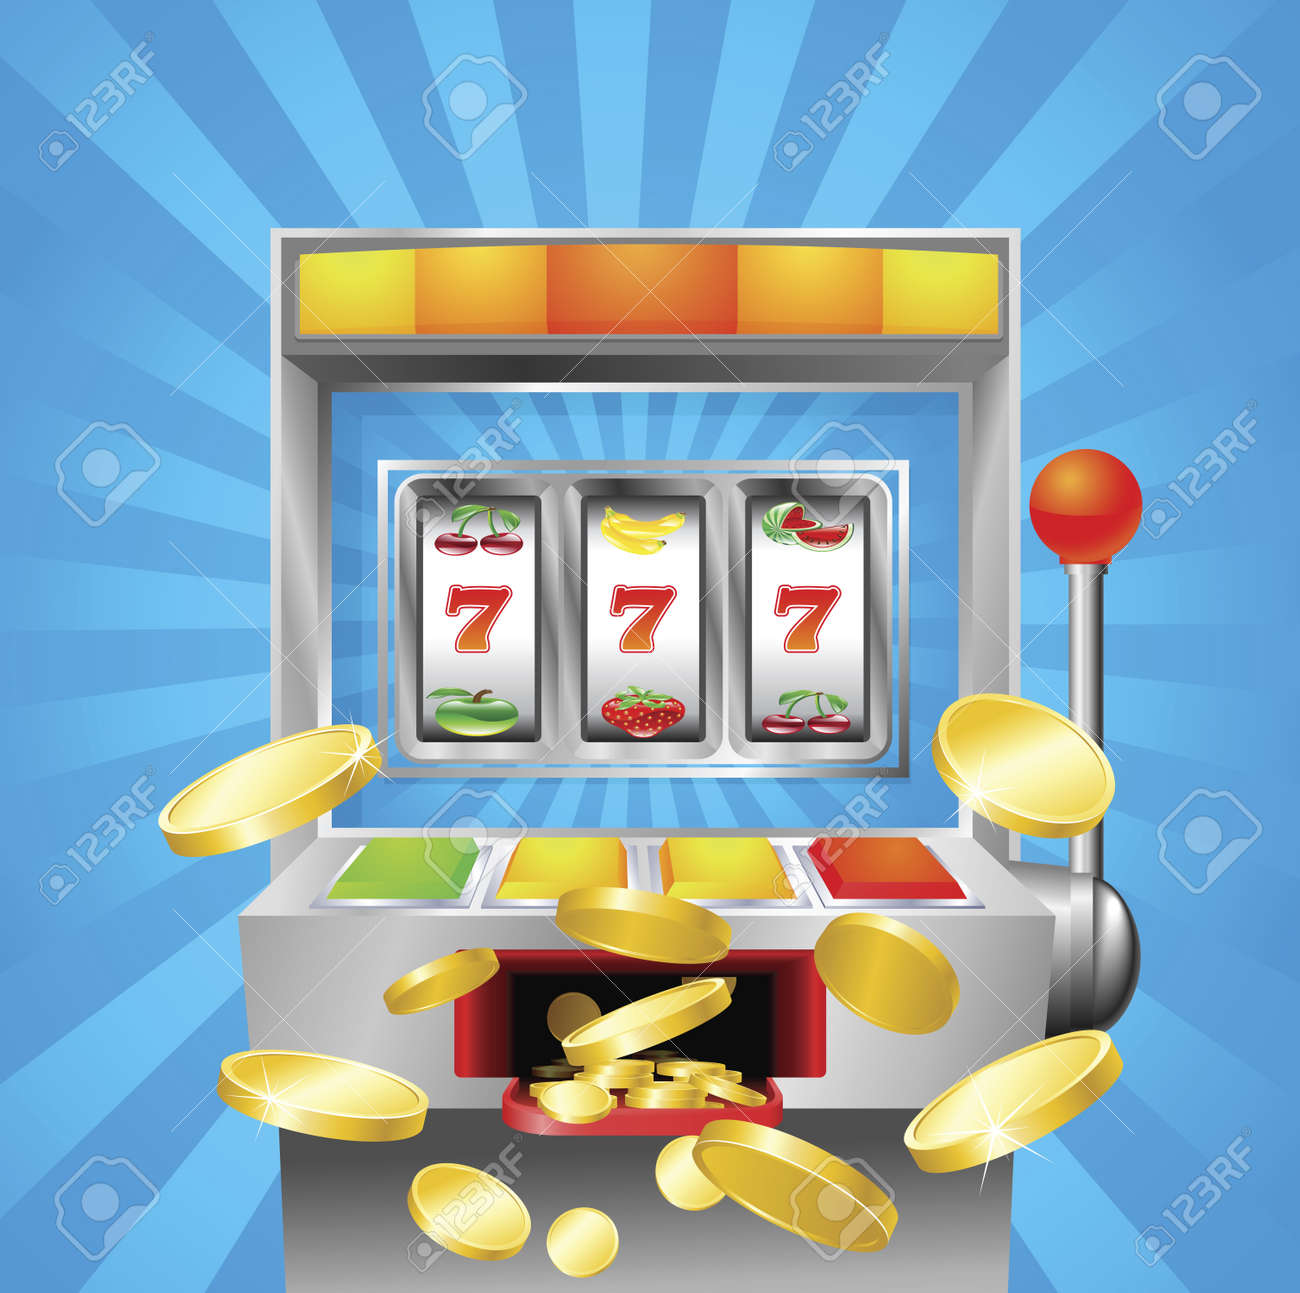 A slot fruit machine winning on 7s. Gold coins fly out at the viewer. Stock Vector - 9851538